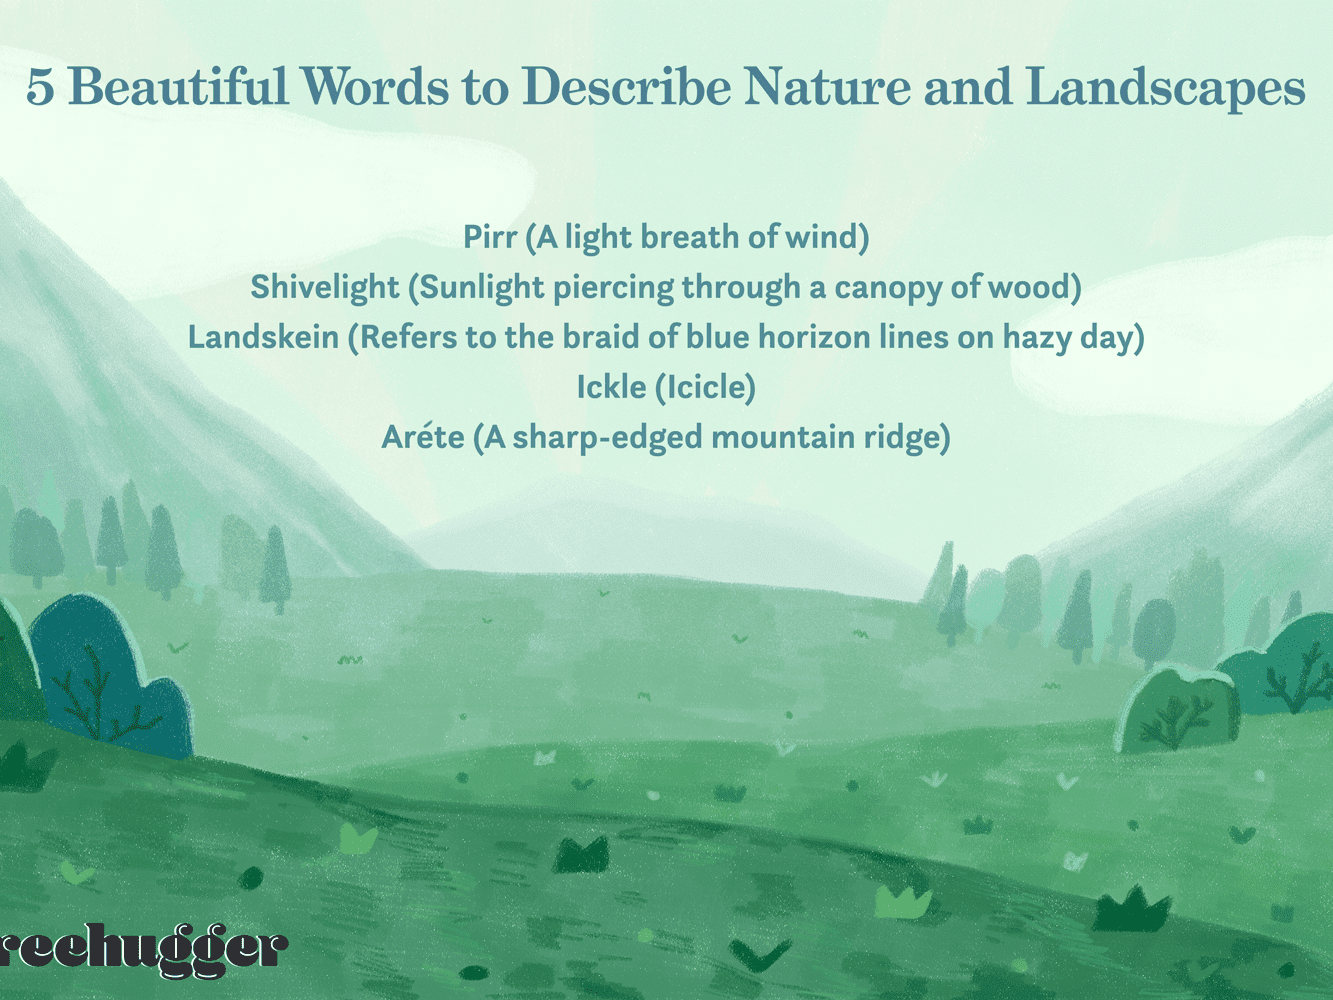 24 Profoundly Beautiful Words That Describe Nature and Landscapes